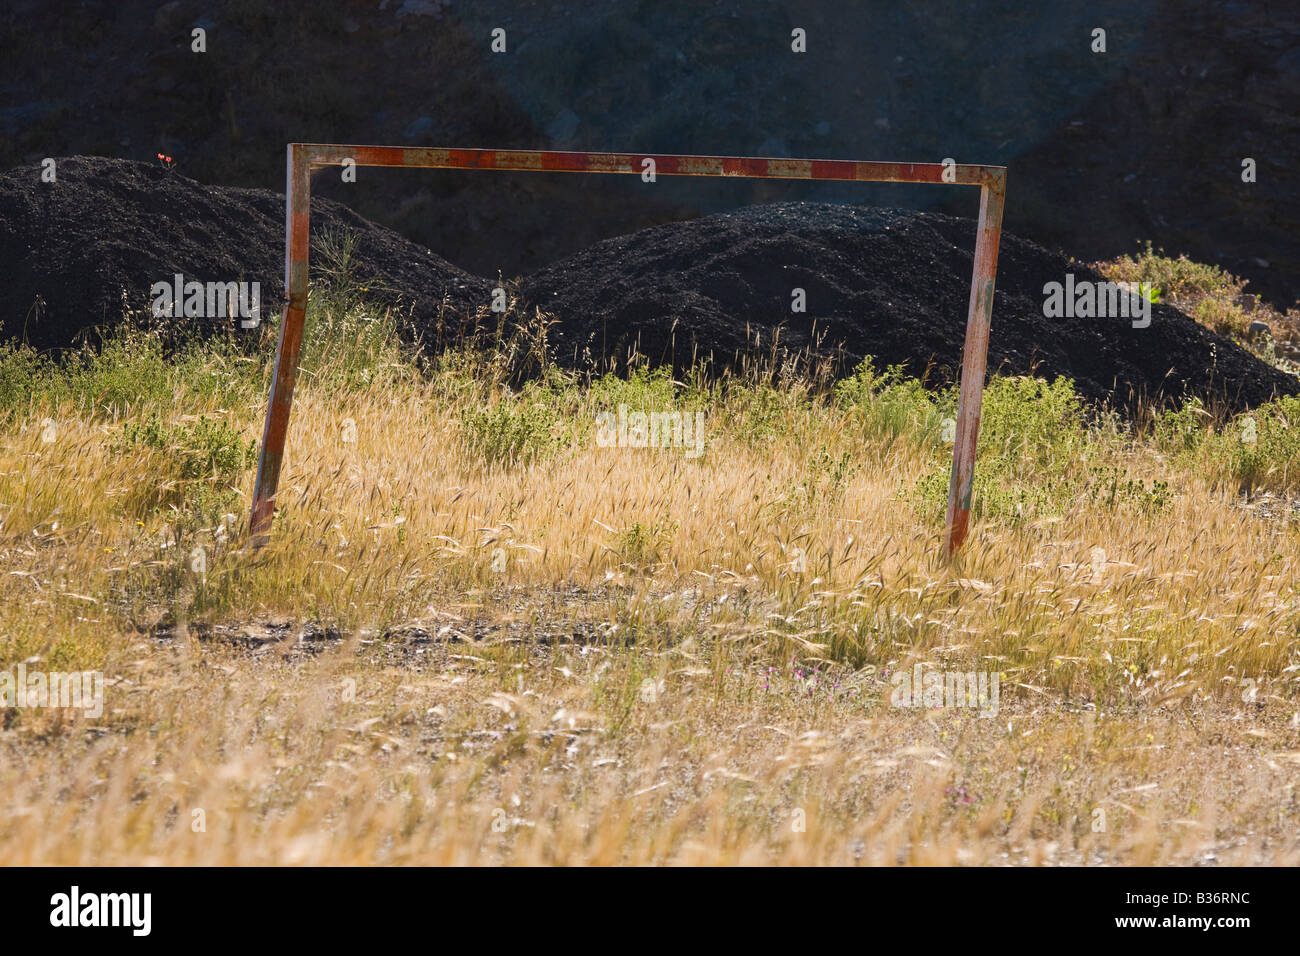 Old battered rusted football goalpost in uncared for field - Stock Image